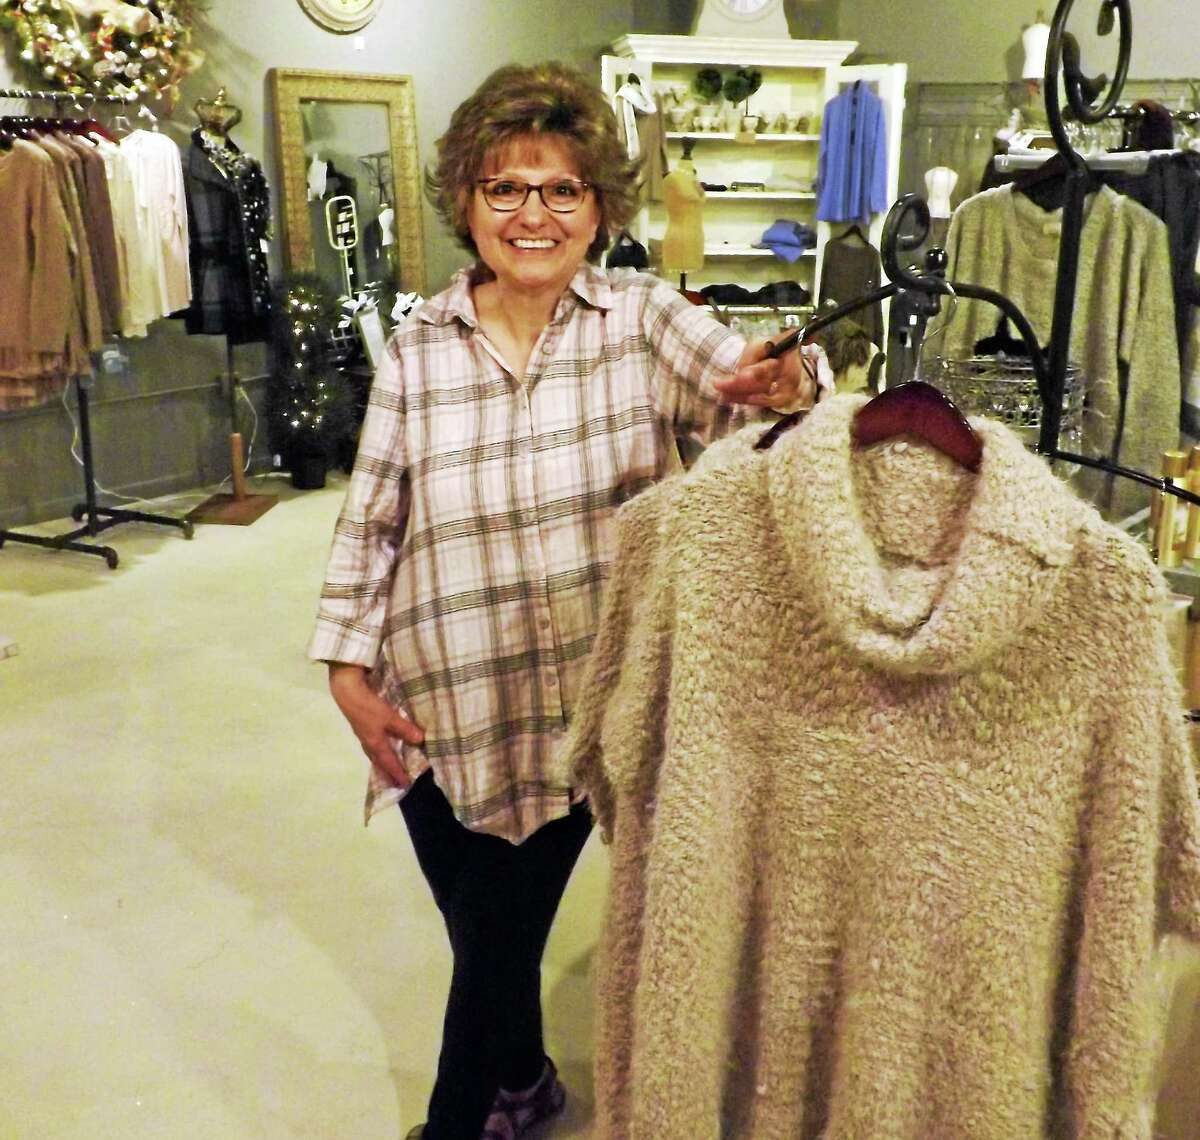 Dottie (Russo) Smith, purveyor of Pocketful of Posies in Essex, now has a second shop in Middletown's Main Street Market, right next door to her cousin Linda Przybylski's Bella Gusta Select Oils and Vinegars.